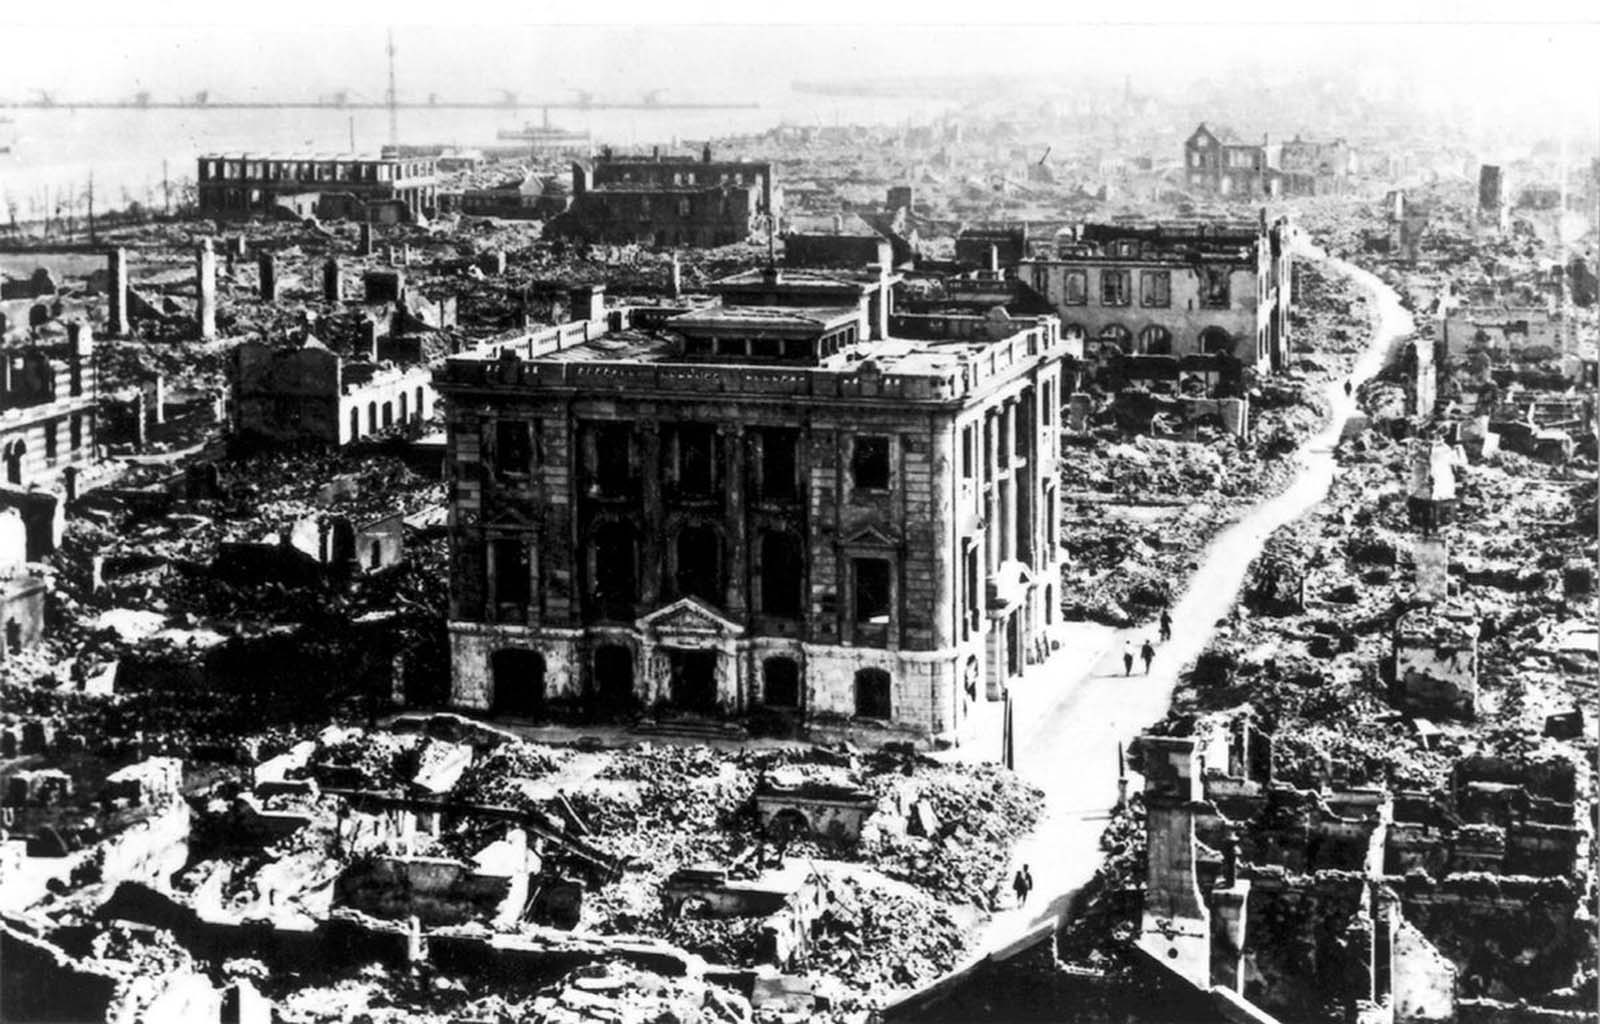 A view of destruction in Tokyo, seen from the top of the Imperial Hotel, which was the only hotel in the region that survived the 1923 earthquake.